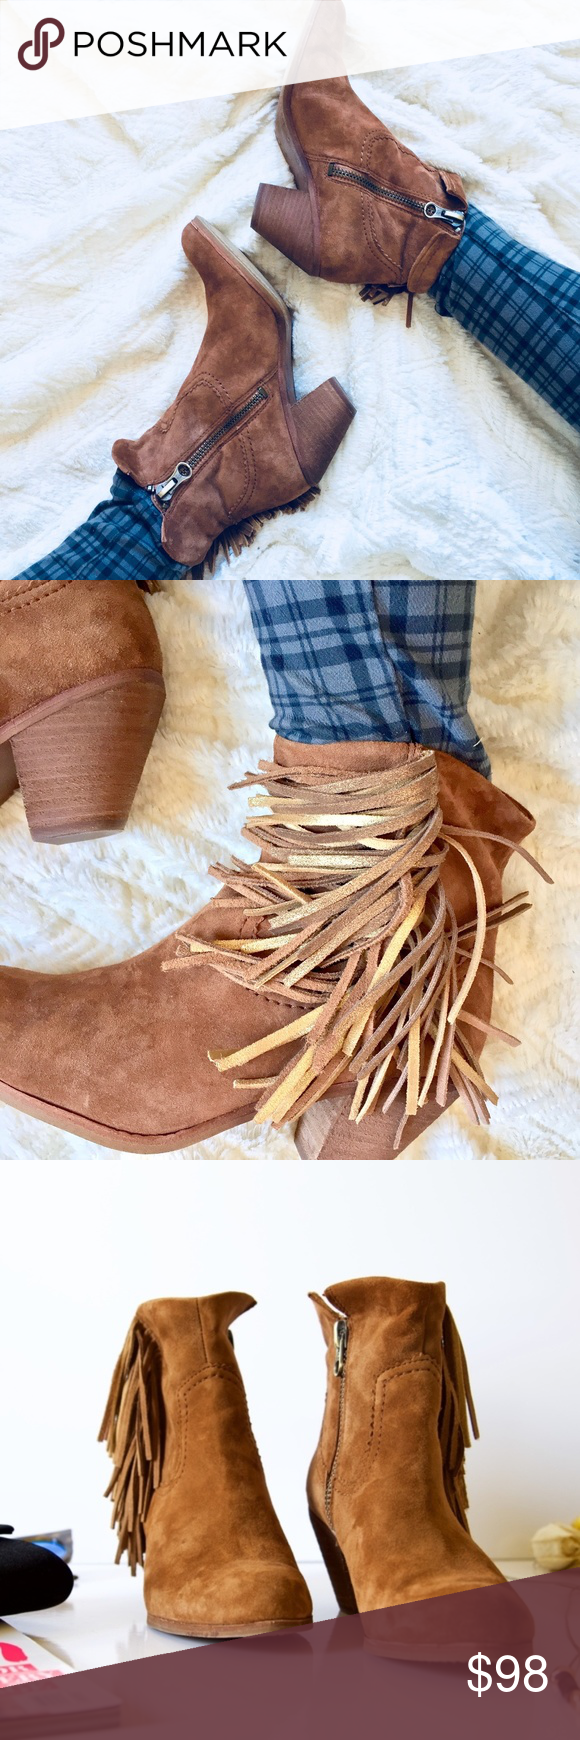 b66b8929e Sam Edelman Louie Fringe Bootie in Soft Saddle Western inspired ankle  booties with gold